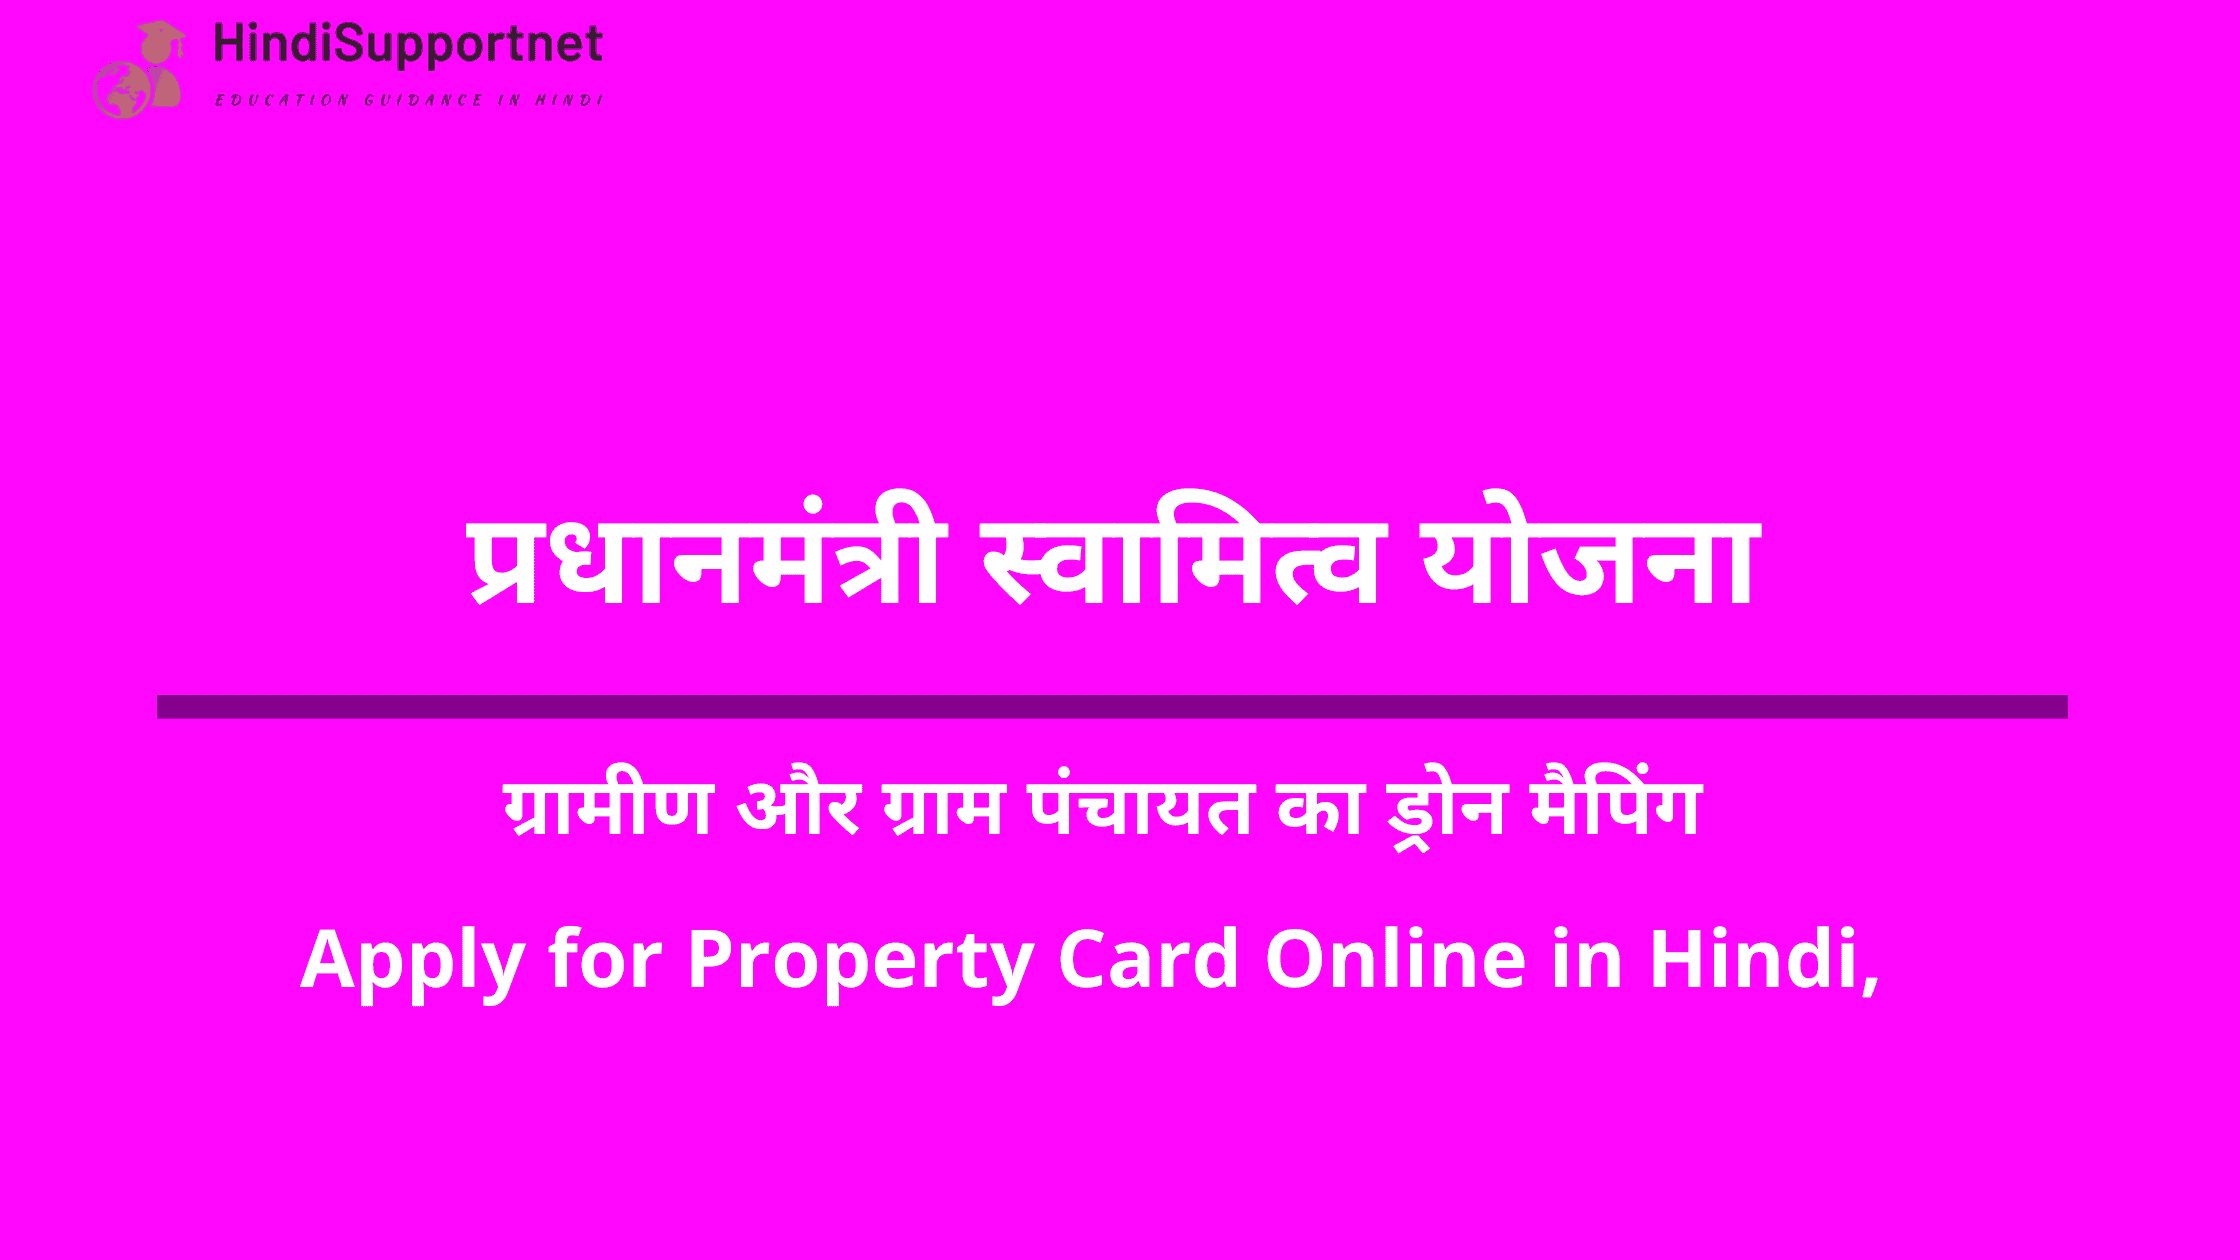 Property Card Registration in HIndi